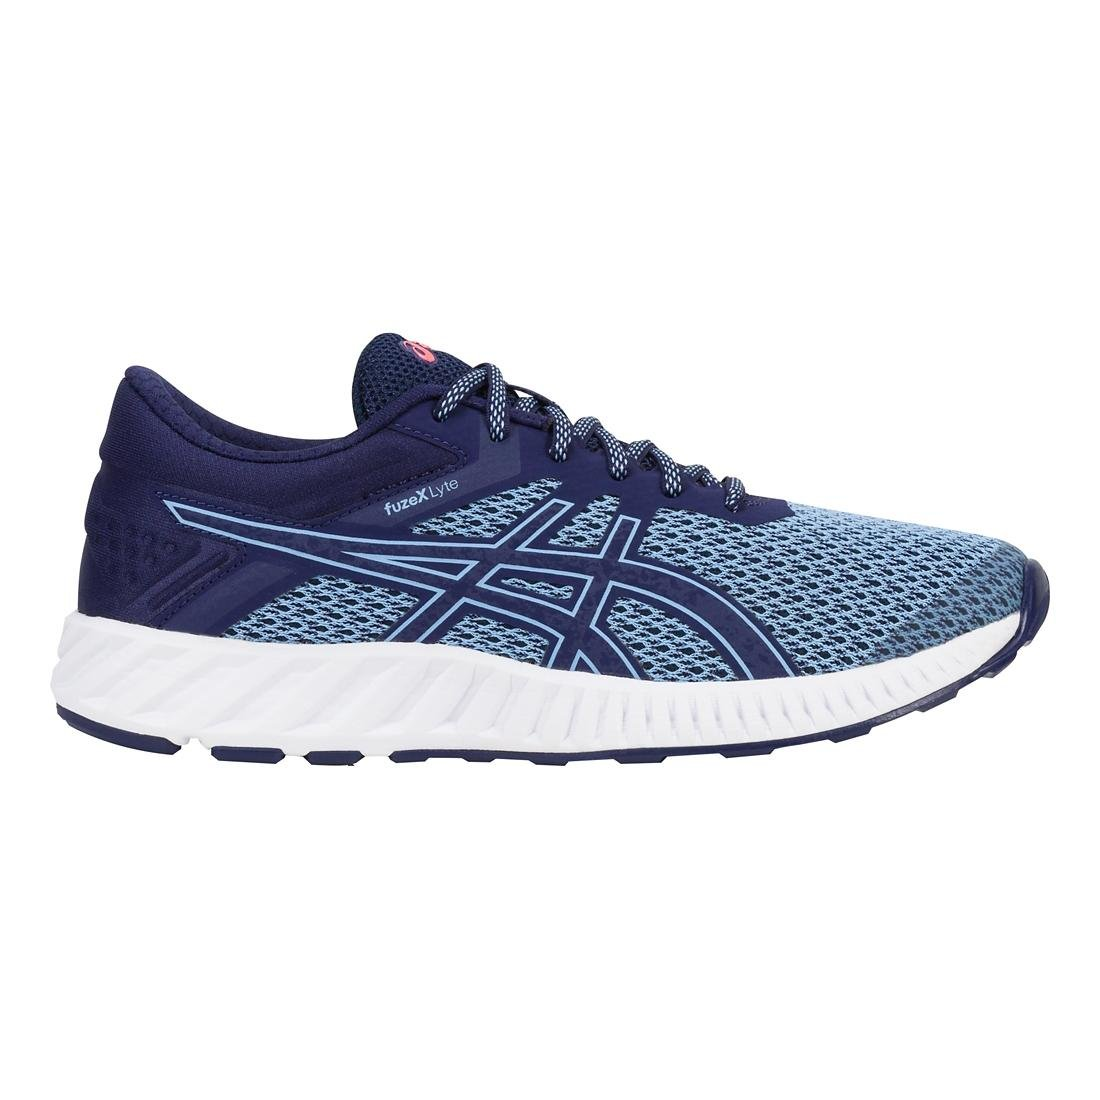 ASICS Women's Fuzex Lyte 2 Running Shoe B0761X5RYP 11 B(M) US|Airy Blue/Astral Aura/Flash Coral